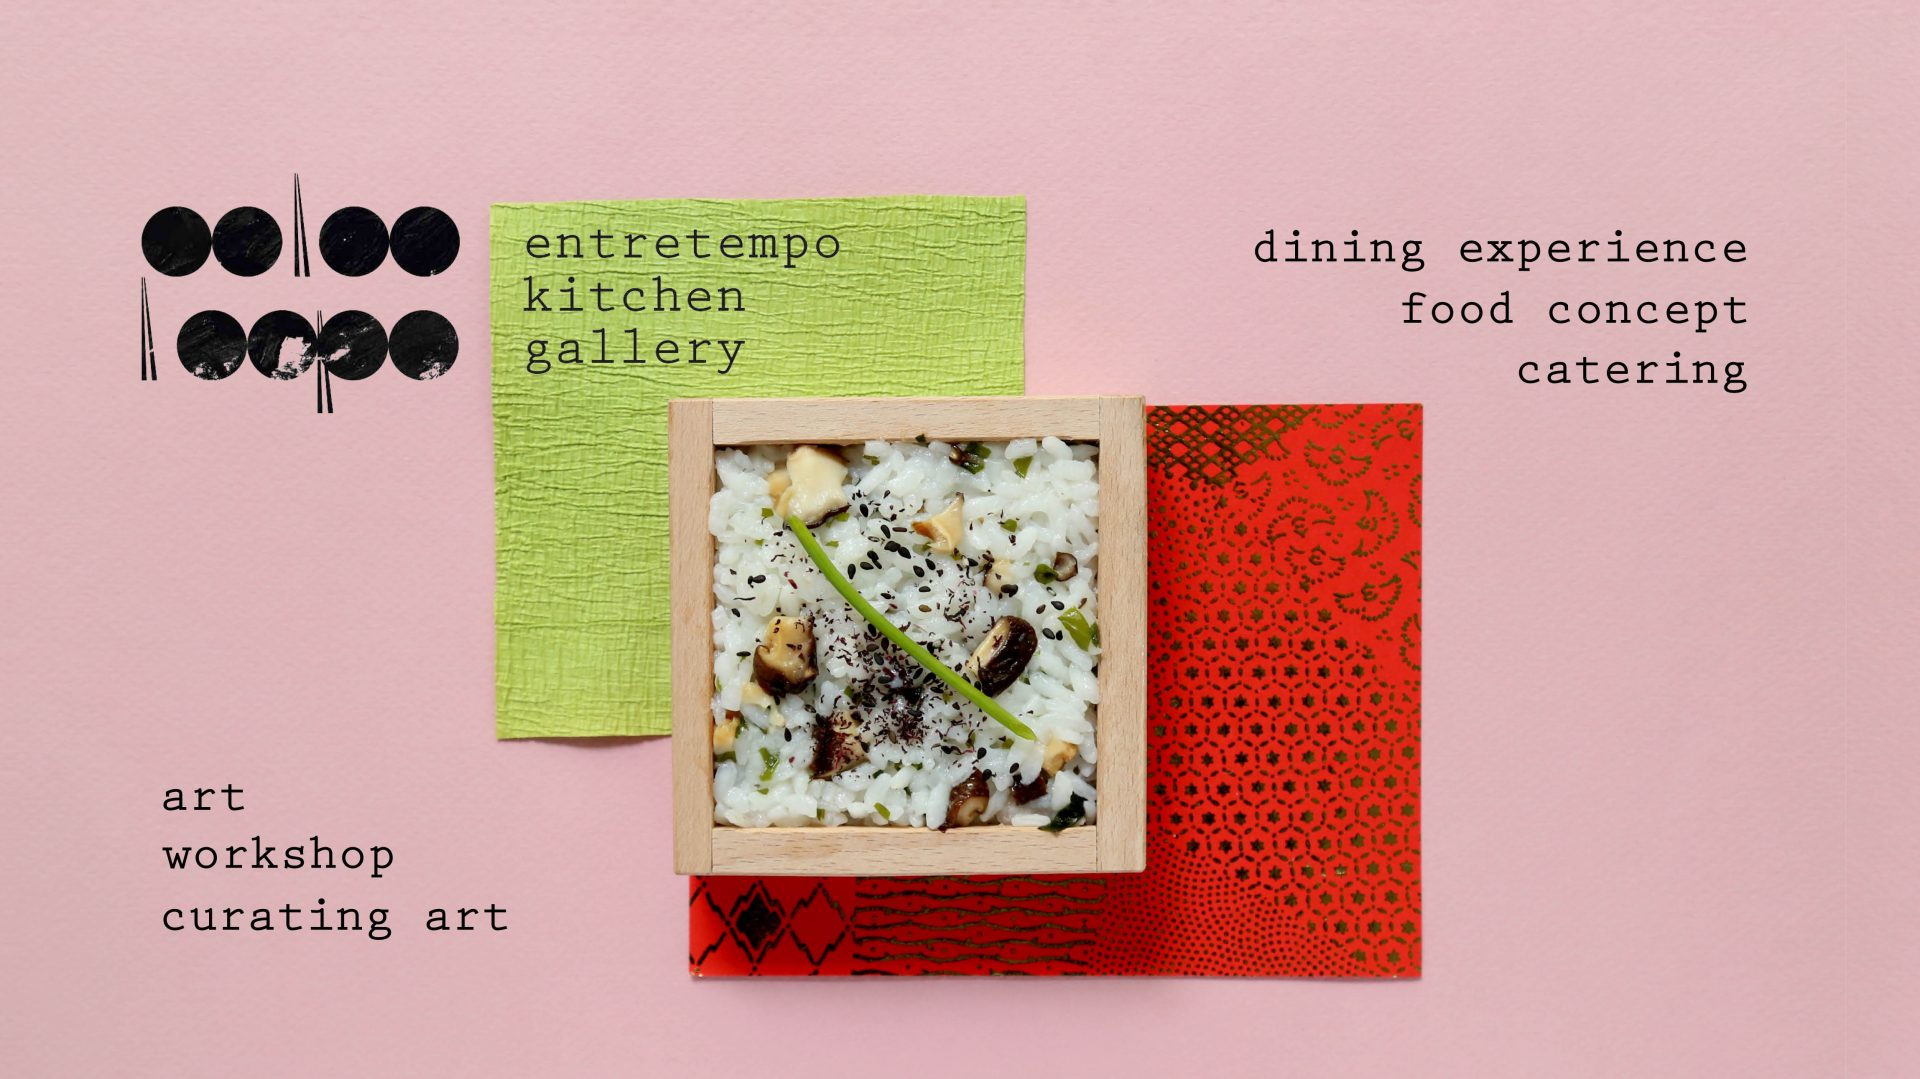 Entretempo Kitchen Gallery